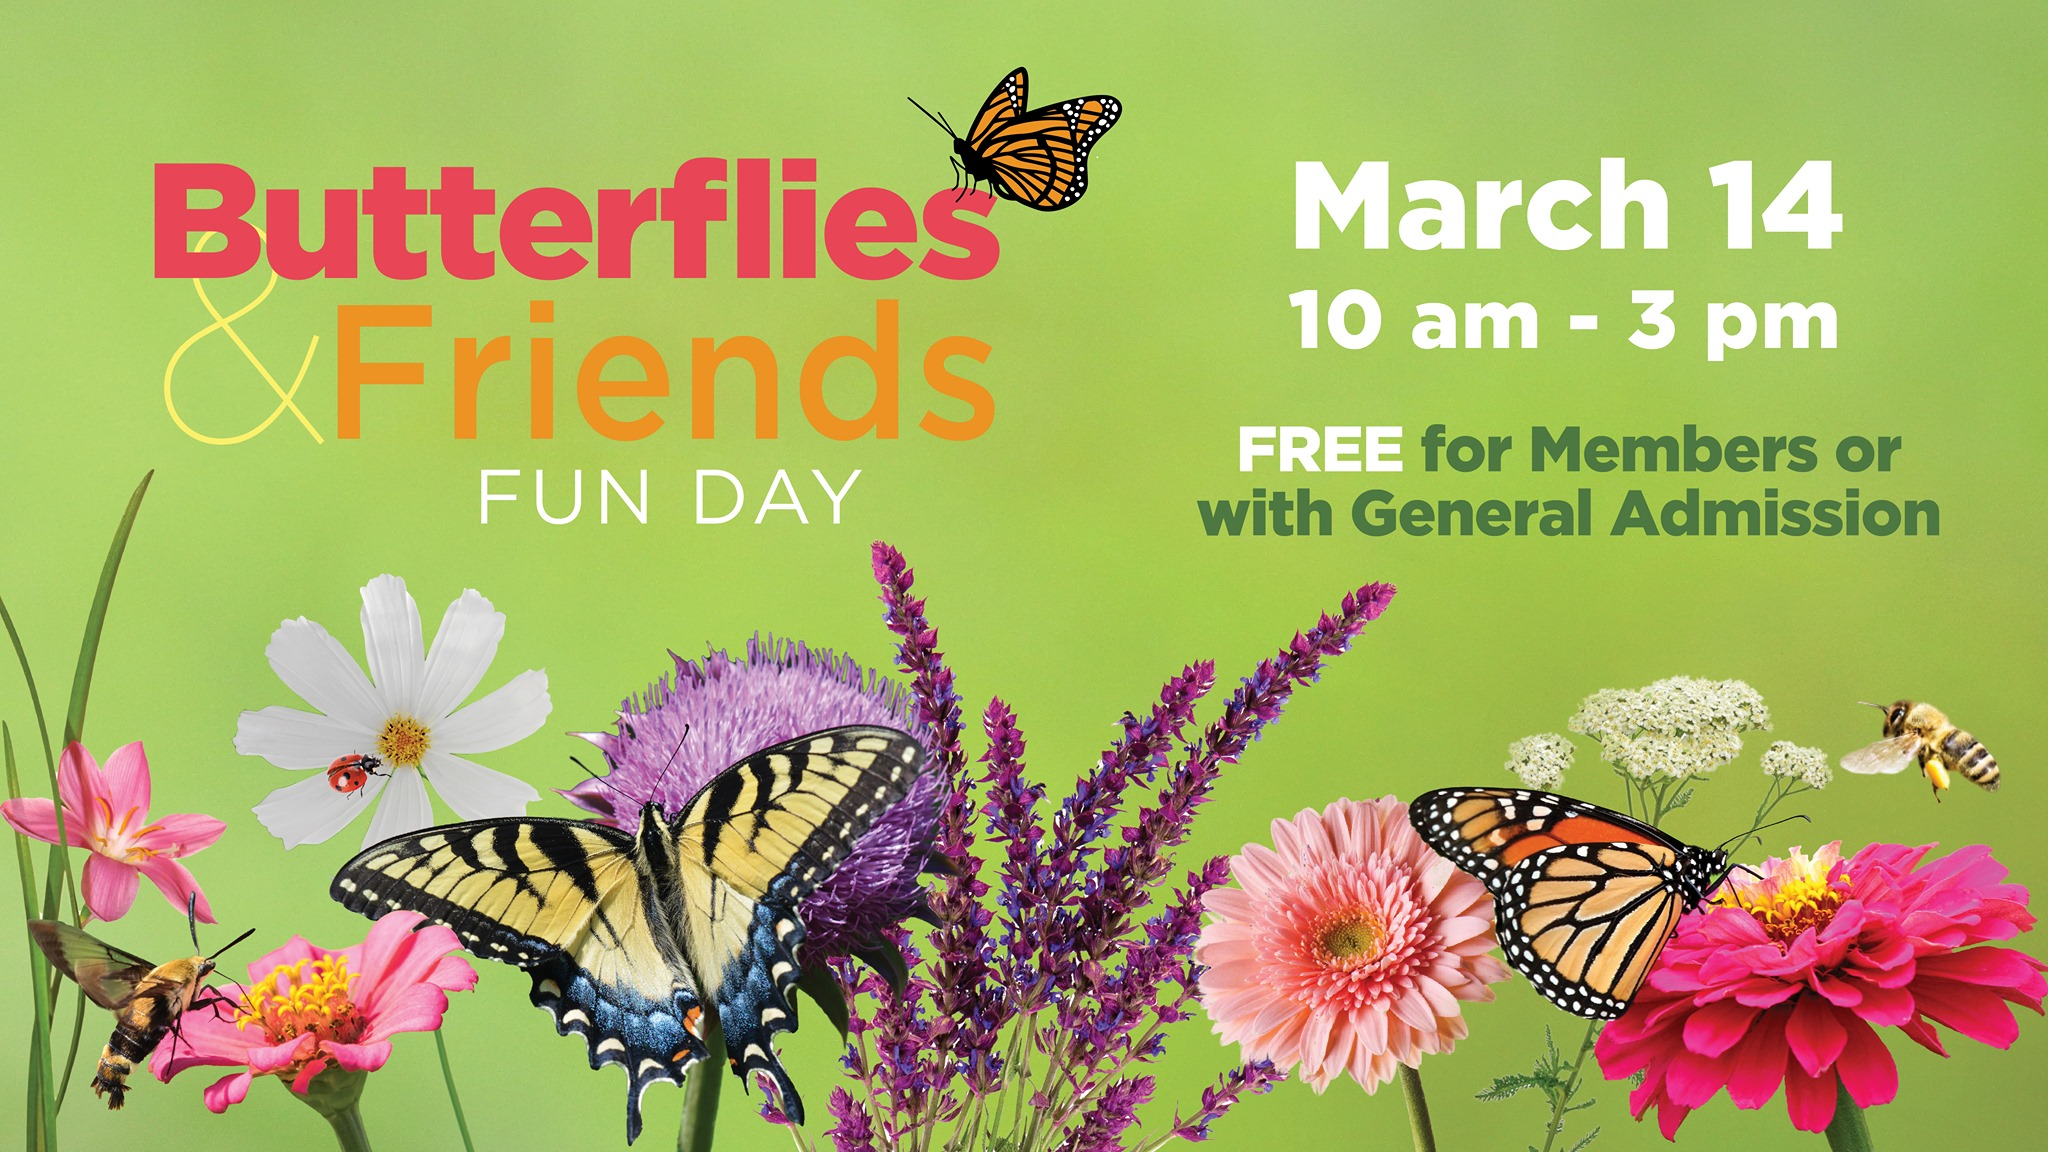 Butterflies & Friends Fun Day